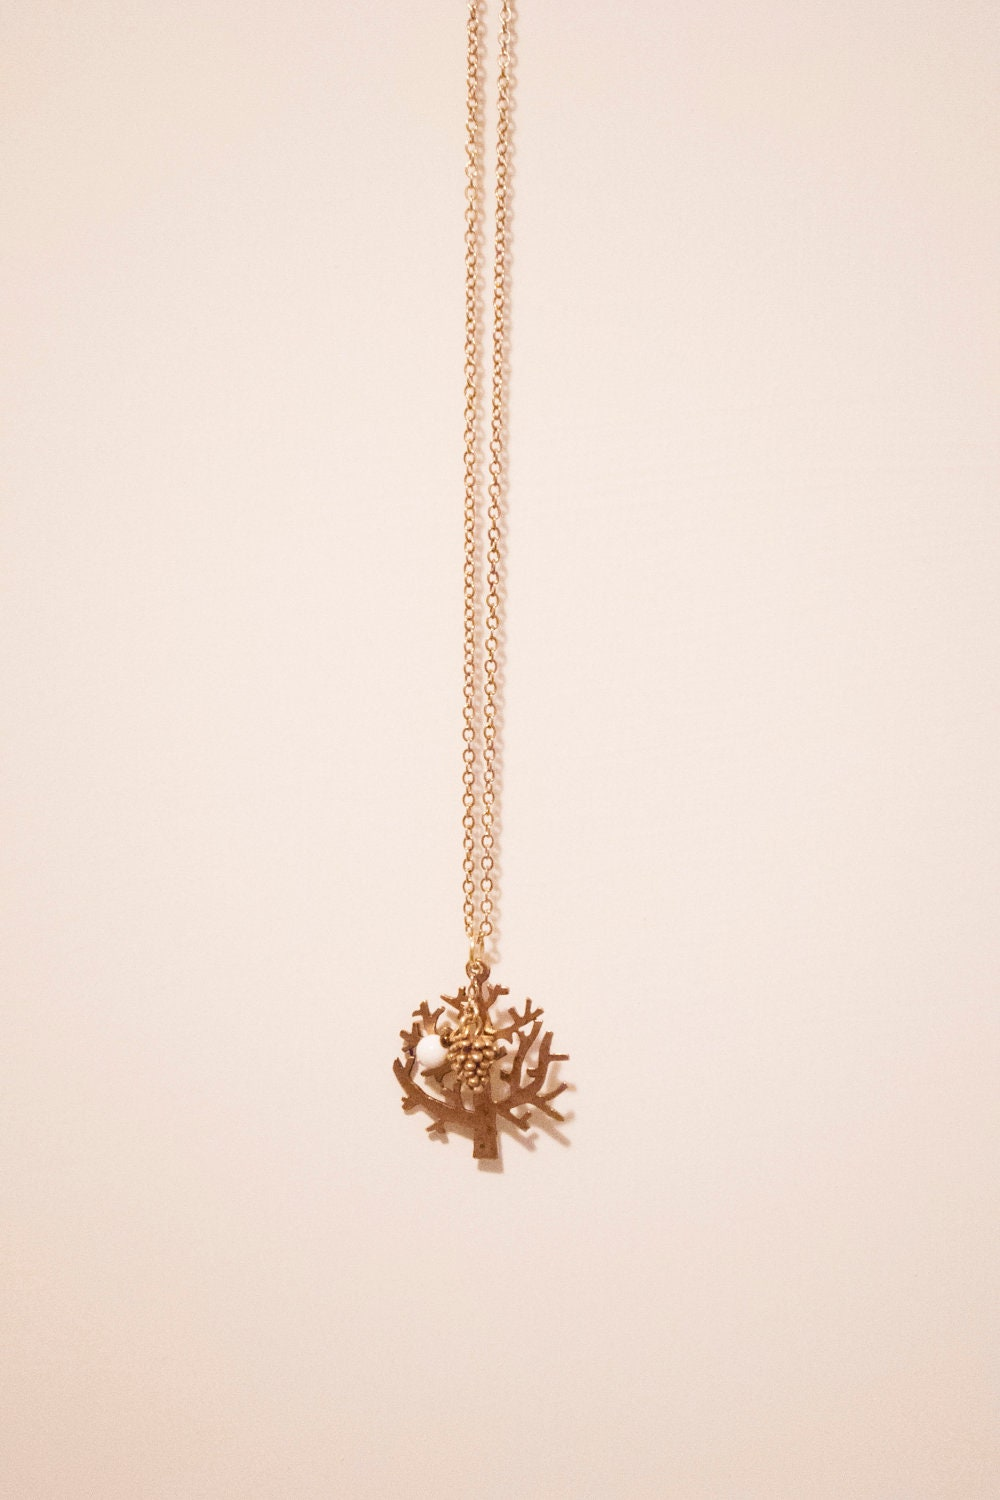 Gold Plated Acorn and Tree Necklace - Getting Ready for Fall/Autumn - Custom Order Available